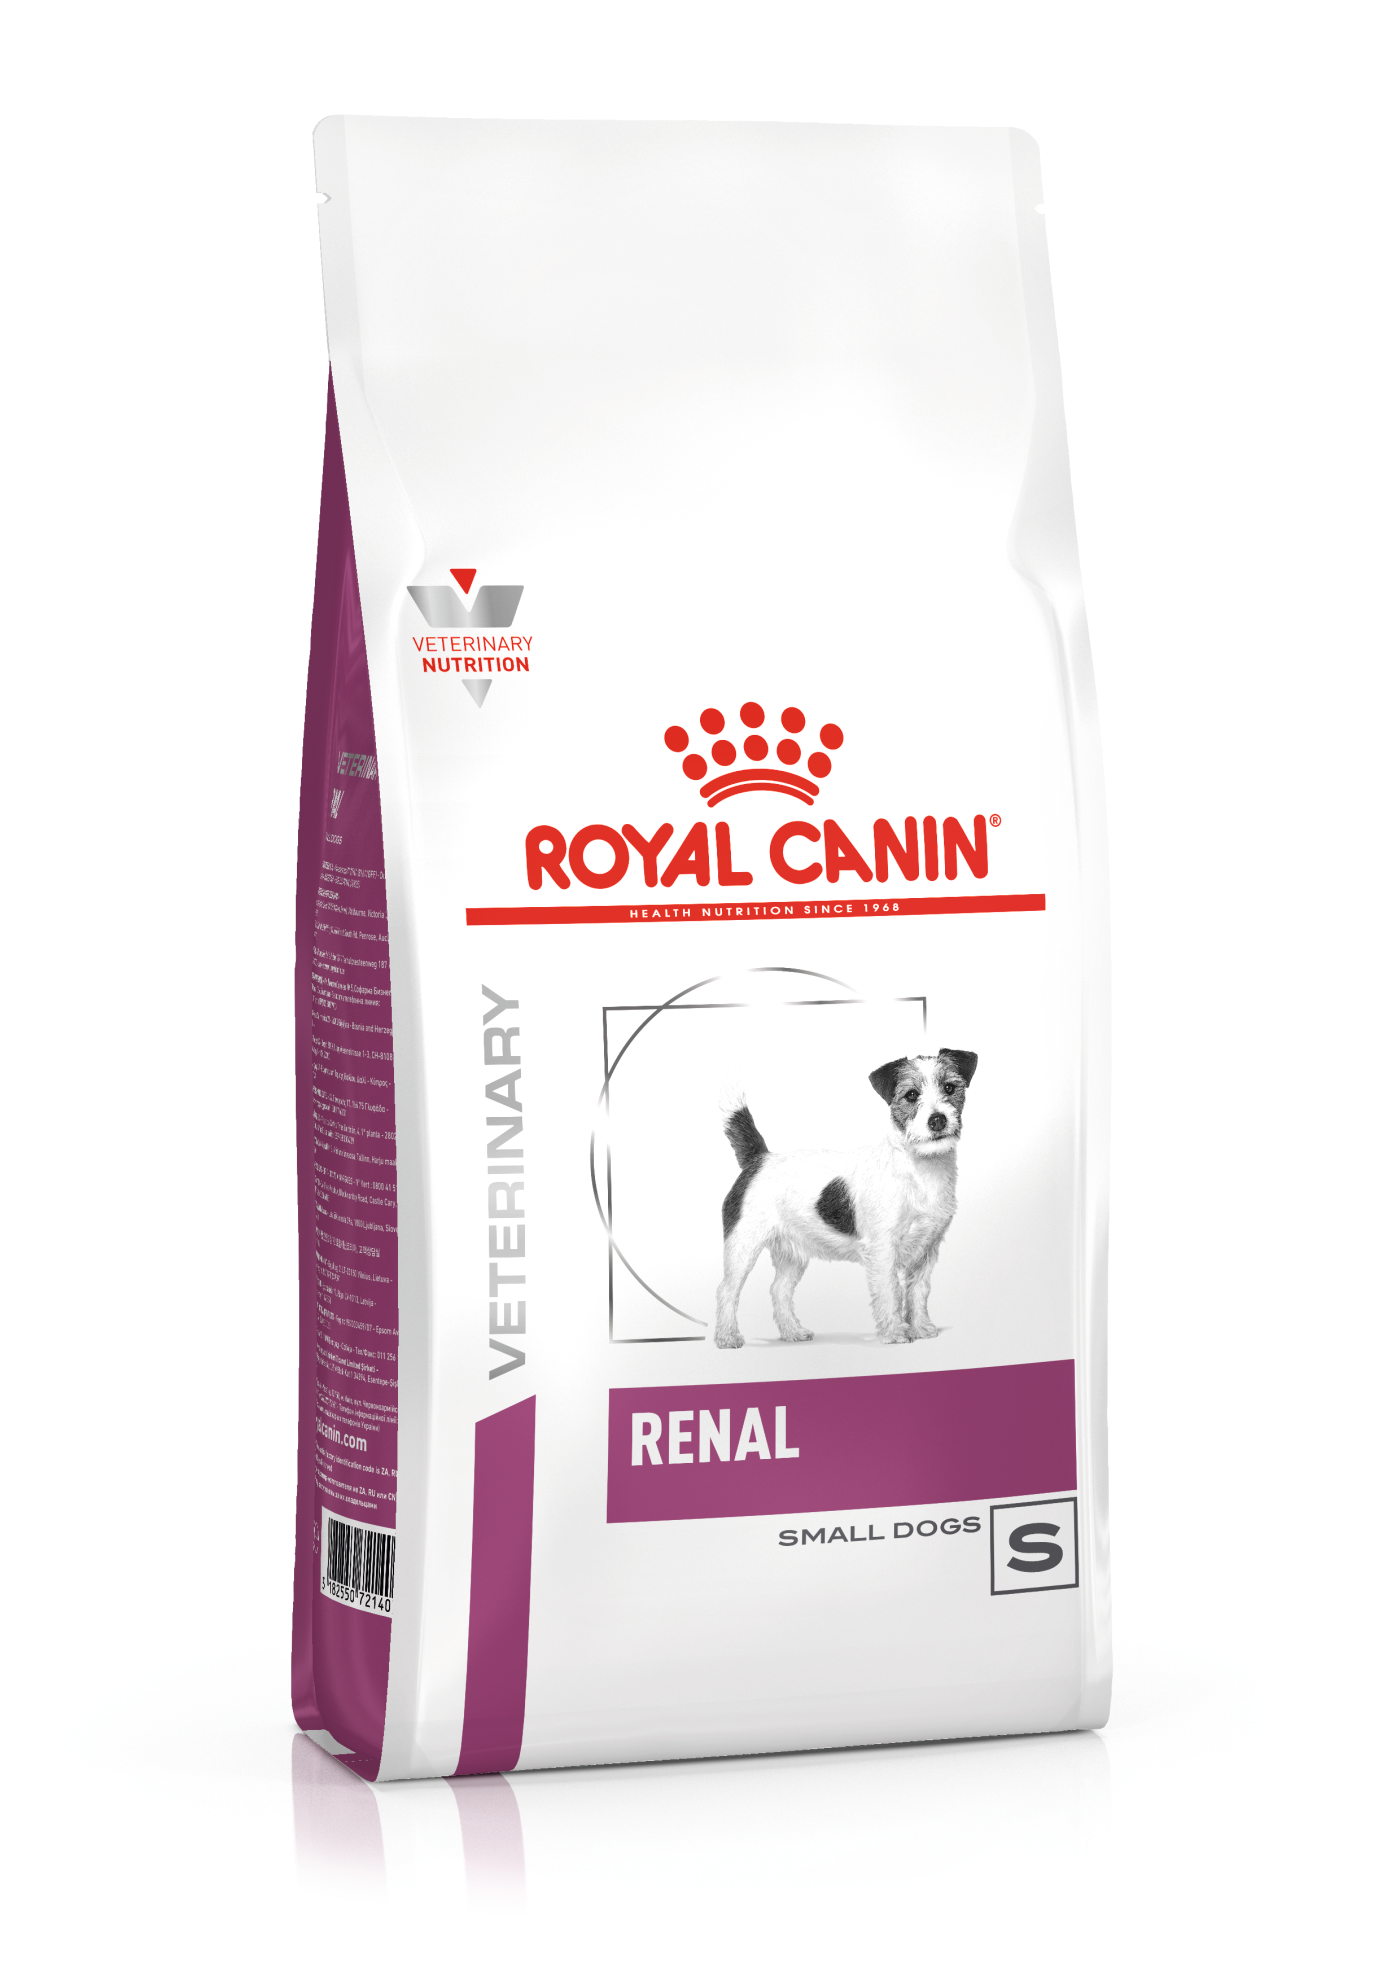 RENAL SMALL DOG product image